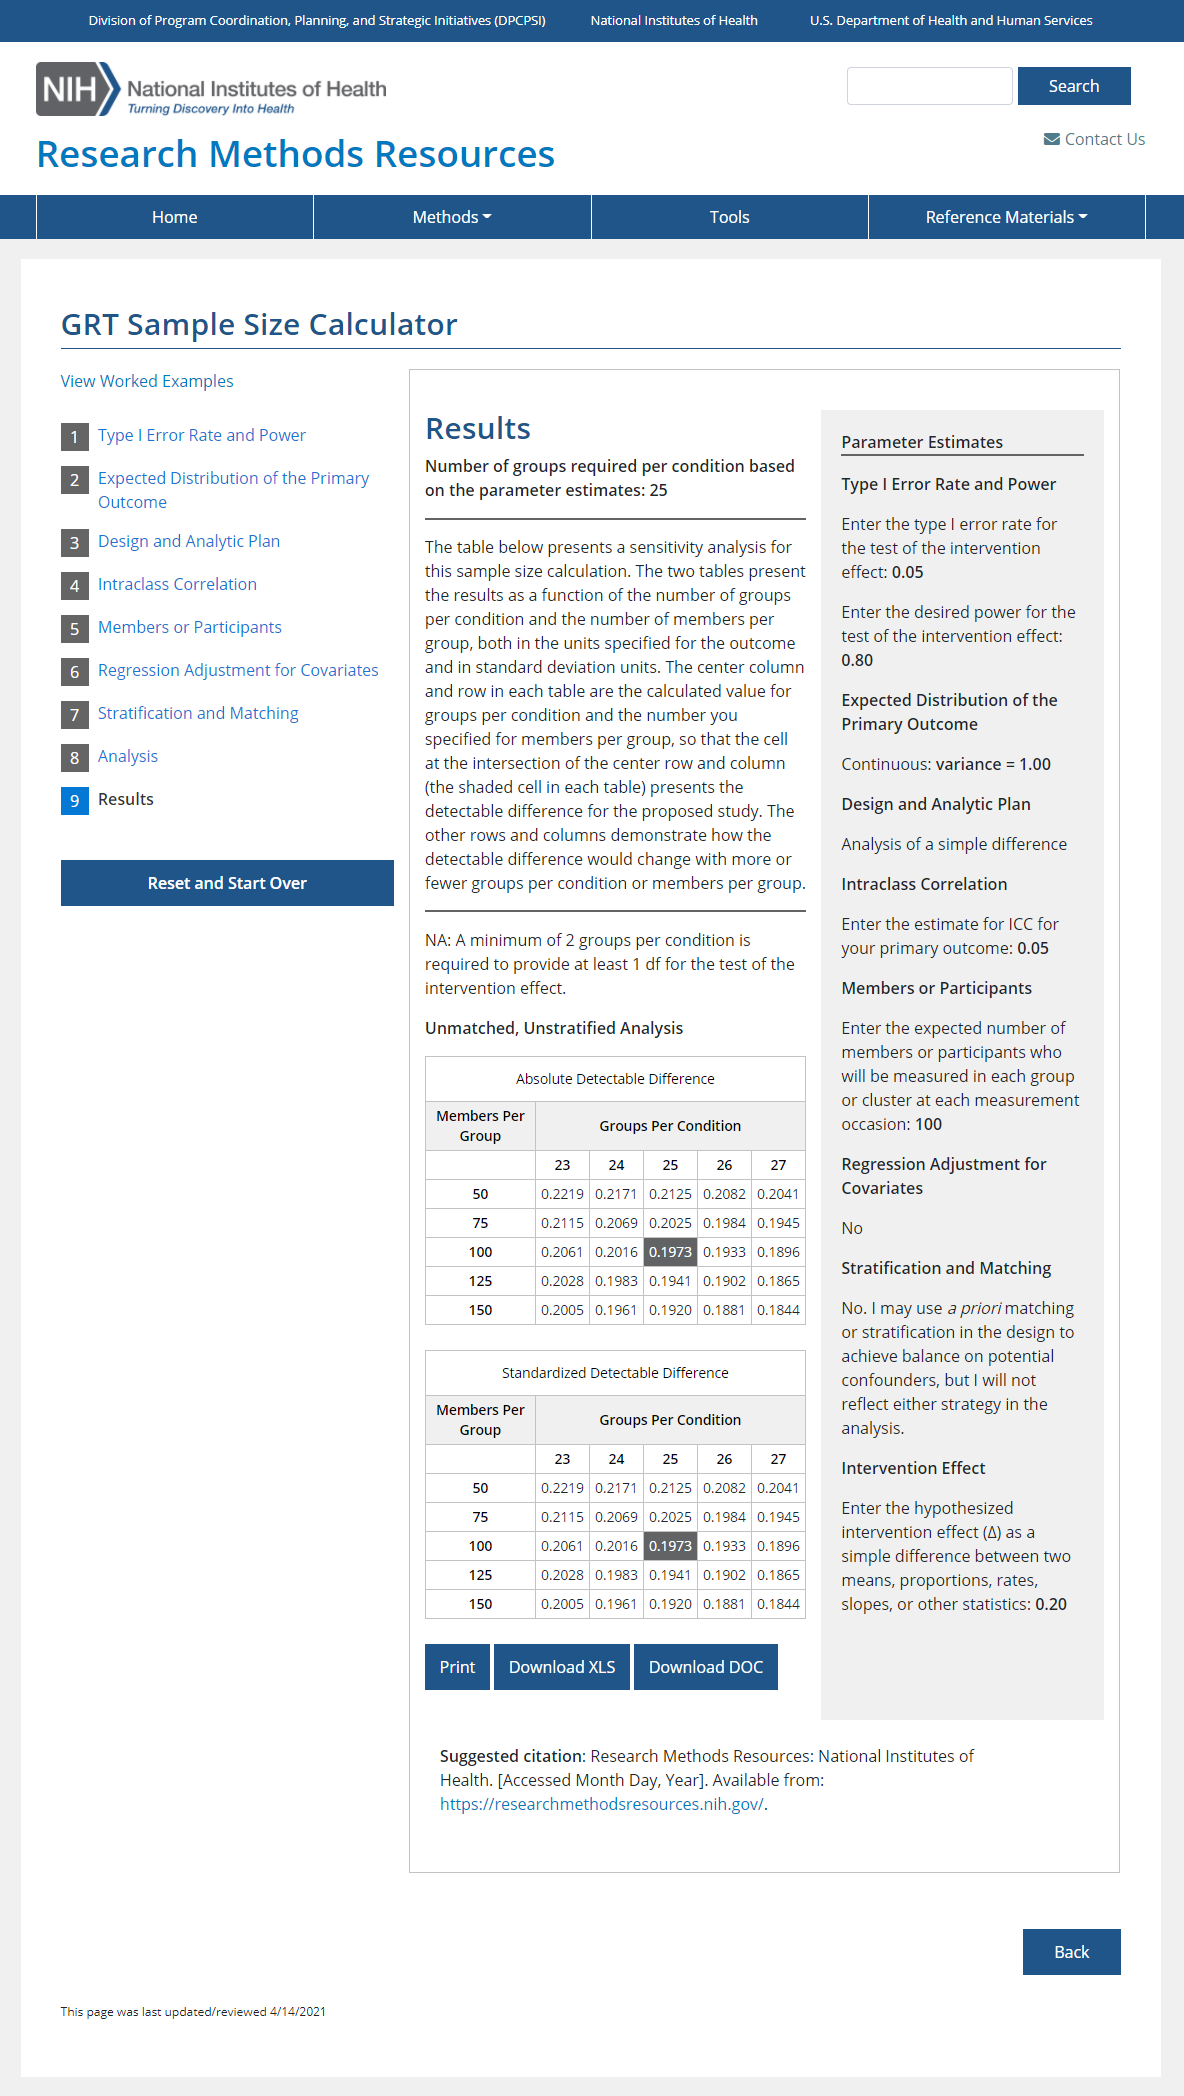 Figure 2 is a screenshot of the results page for the Group or Cluster Randomized Trial sample size calculator.